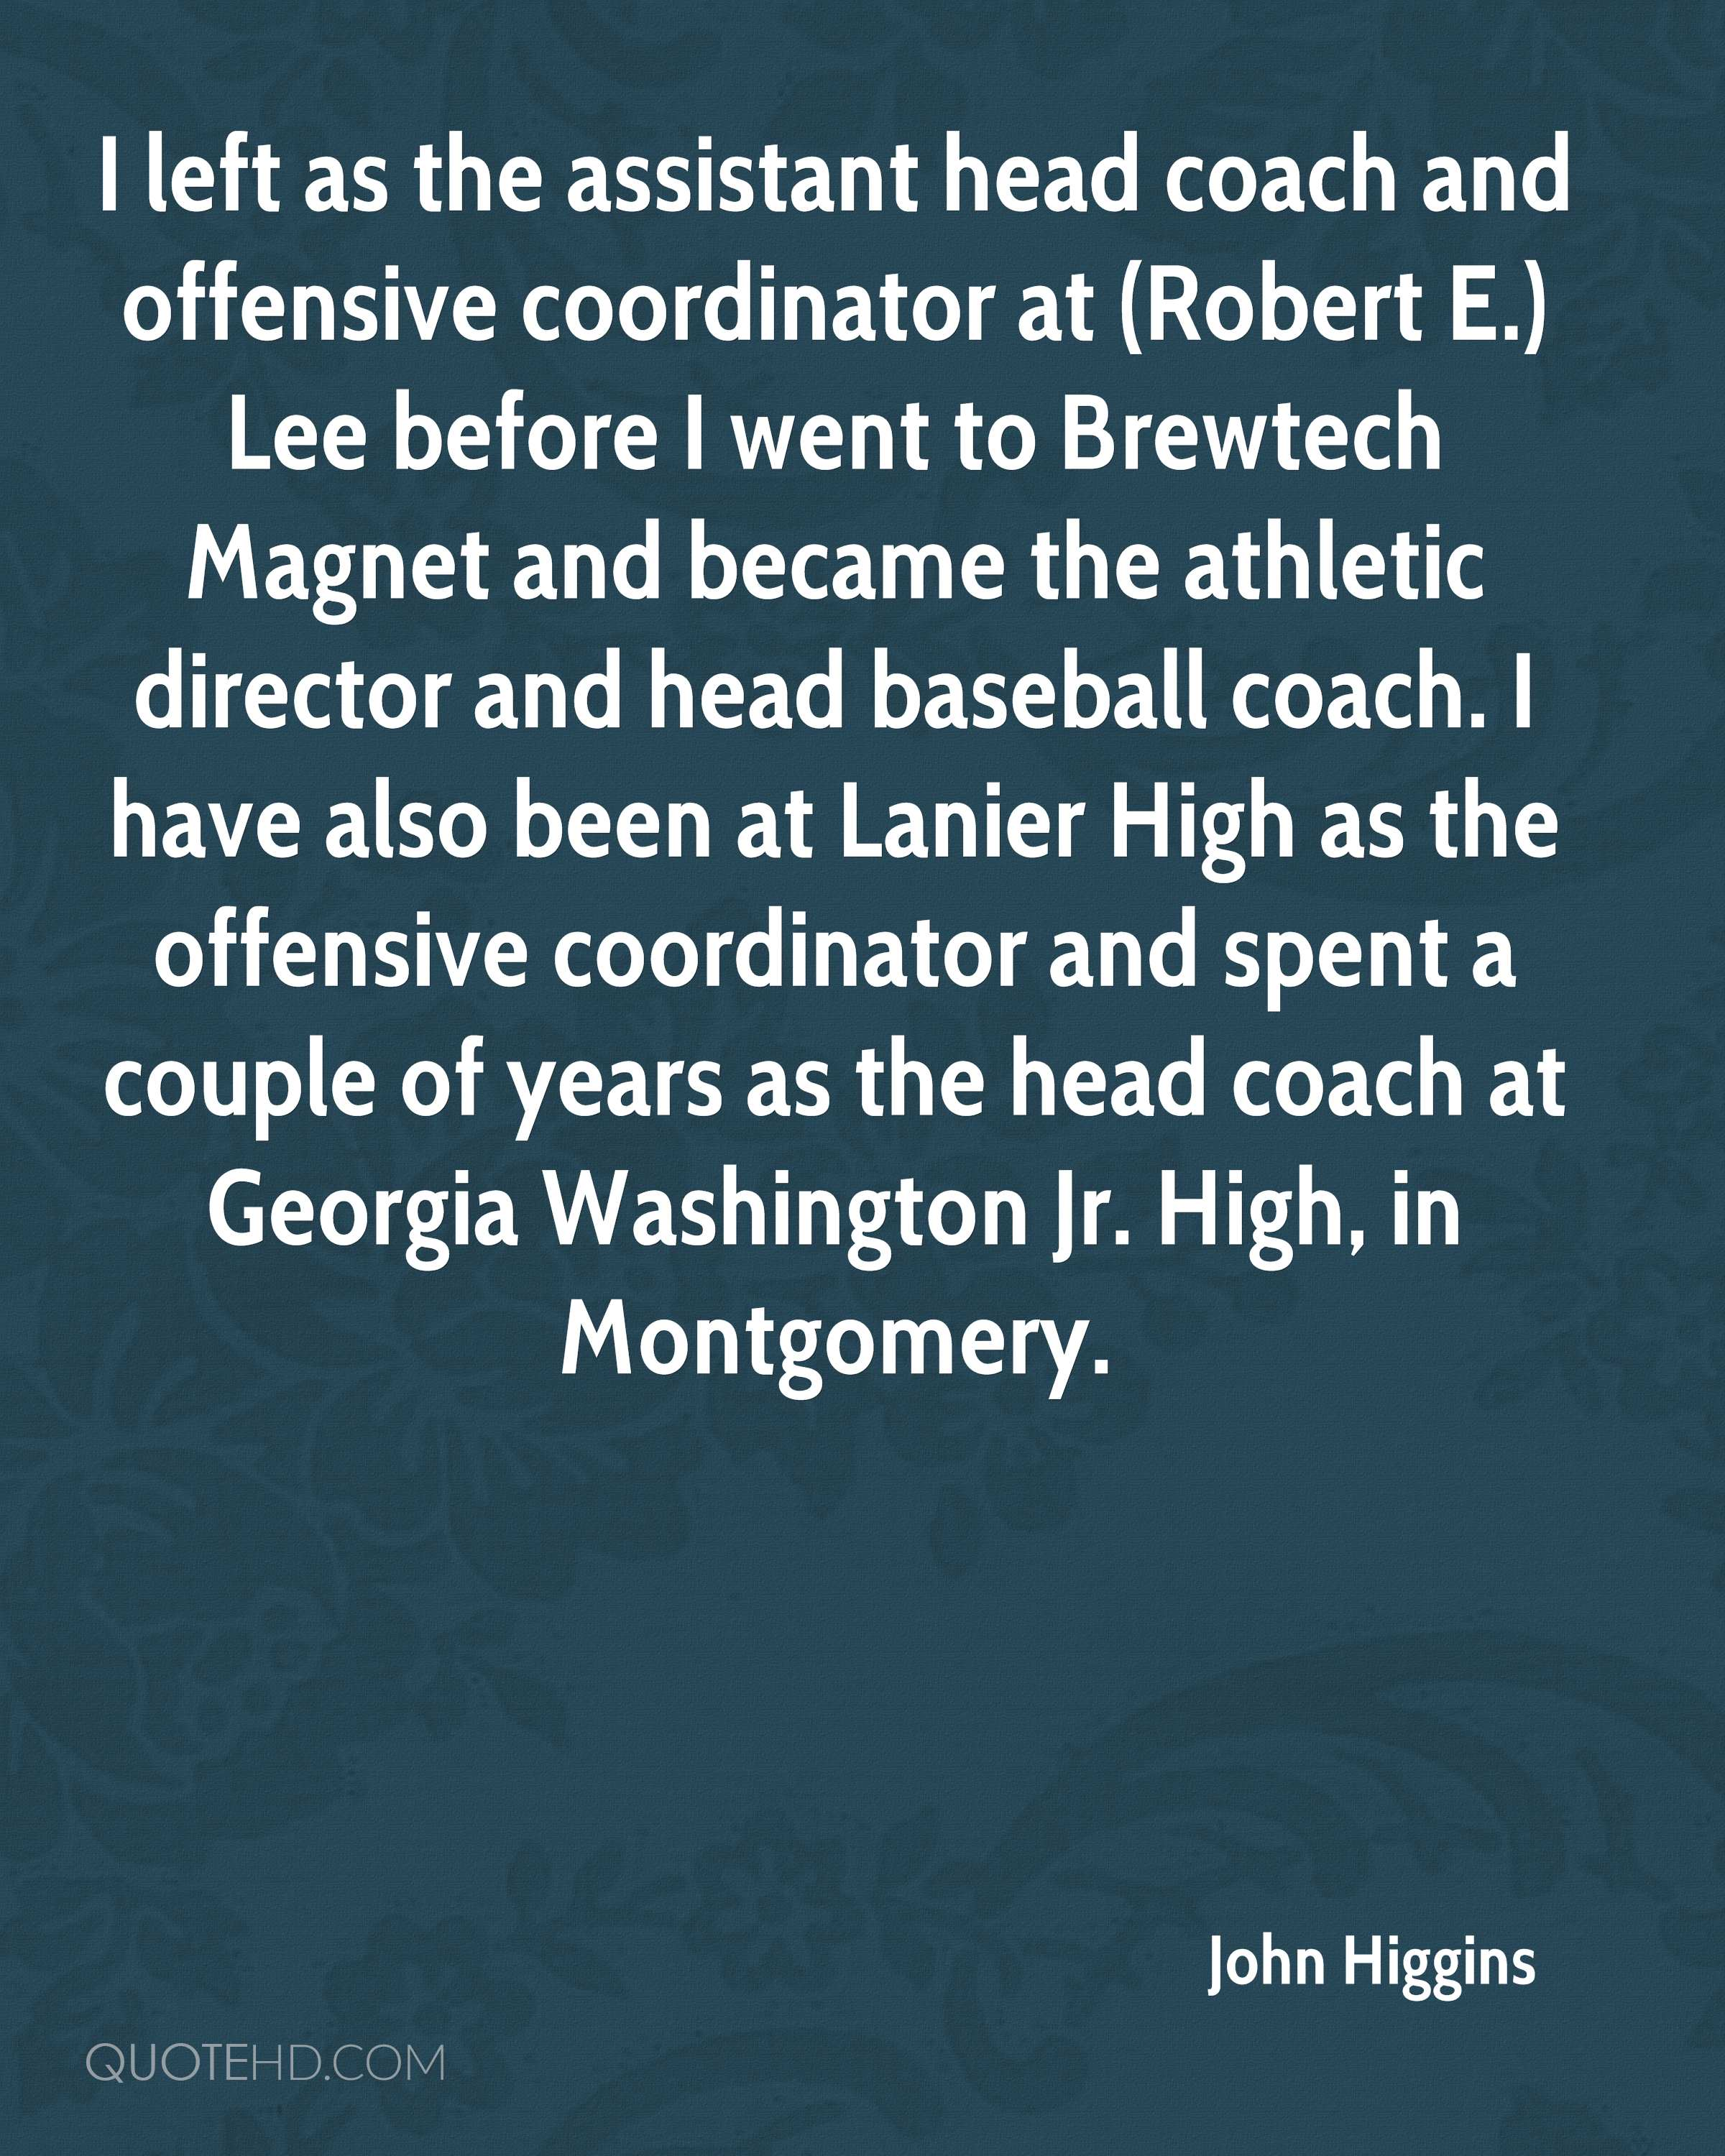 I left as the assistant head coach and offensive coordinator at (Robert E.) Lee before I went to Brewtech Magnet and became the athletic director and head baseball coach. I have also been at Lanier High as the offensive coordinator and spent a couple of years as the head coach at Georgia Washington Jr. High, in Montgomery.